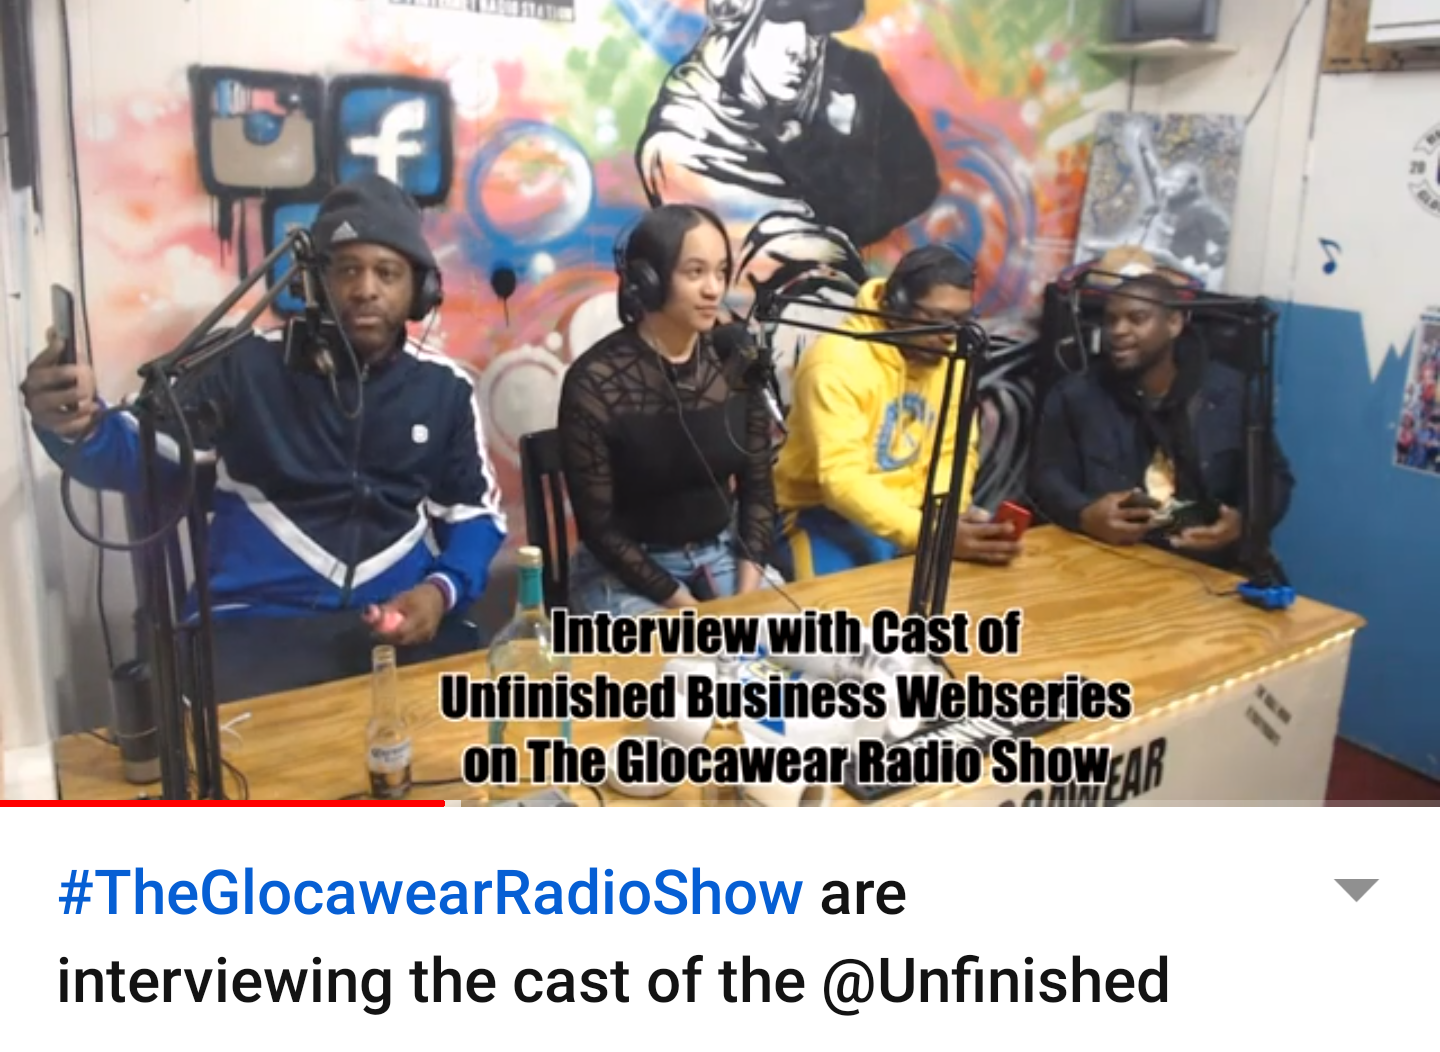 The Glocawear Radio Show are interviewing the cast of the @Unfinished_Business_Webseries